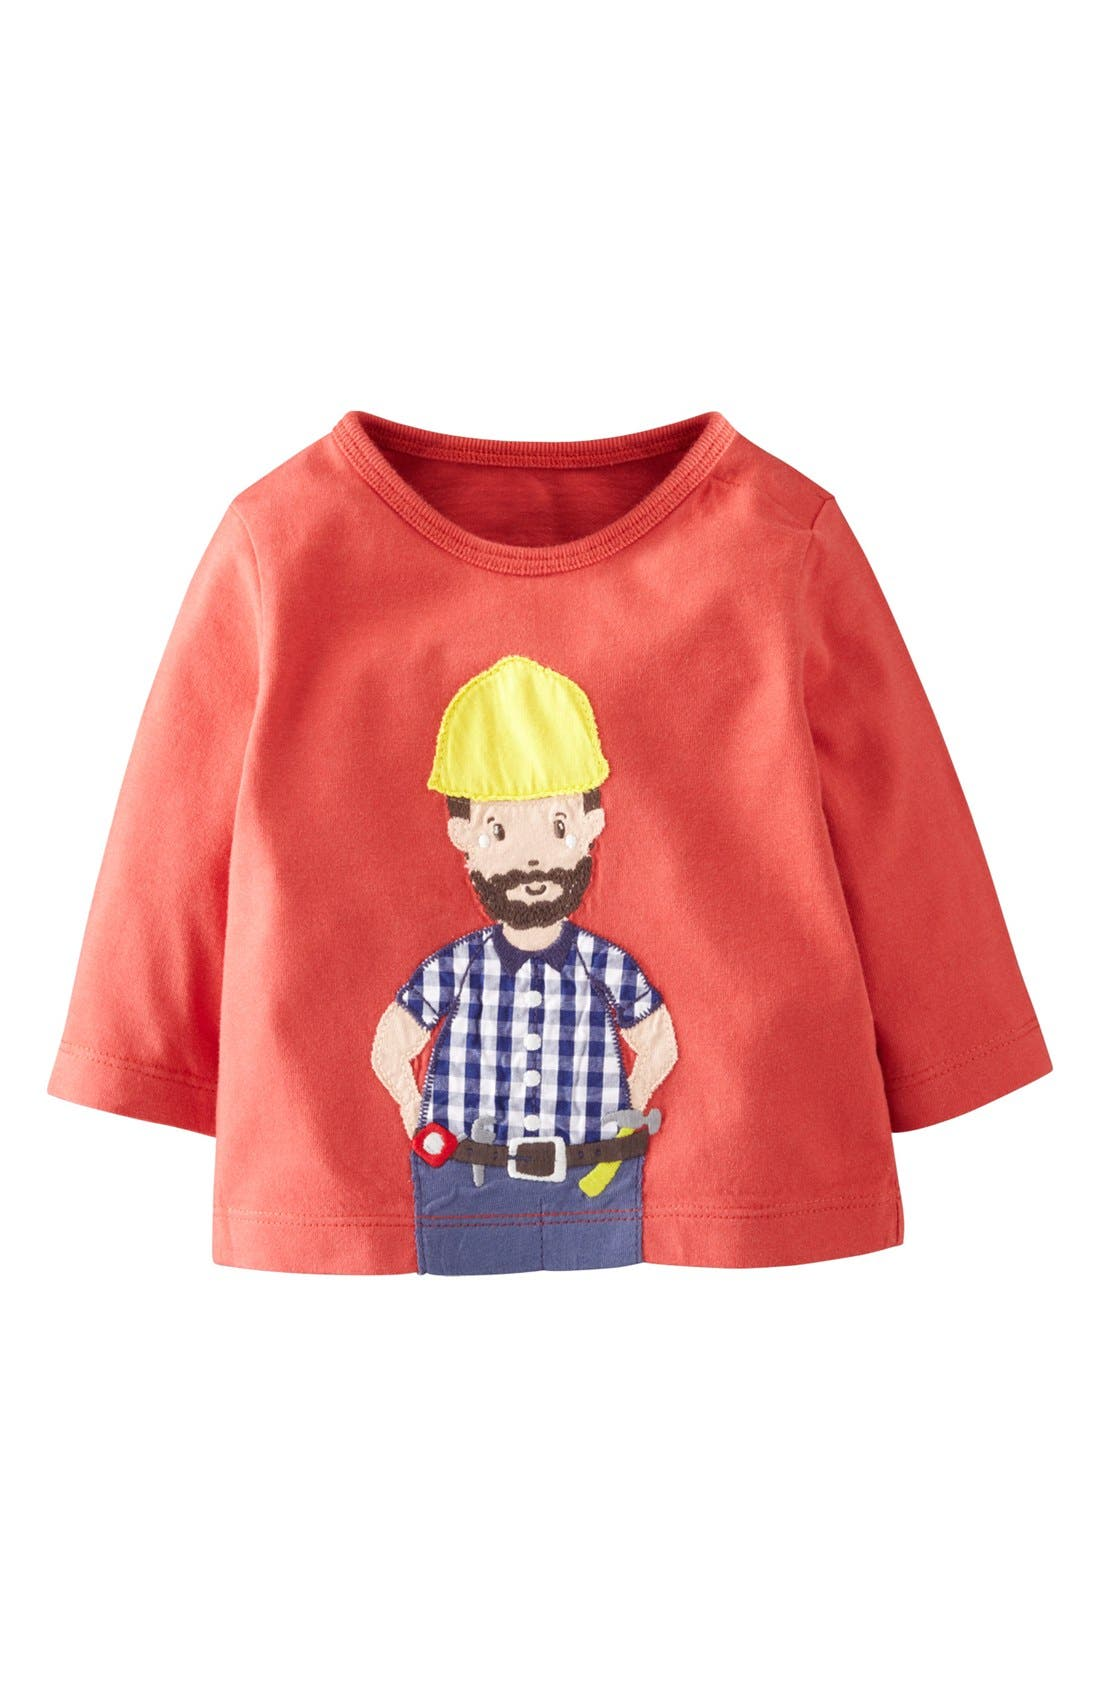 Alternate Image 1 Selected - Mini Boden 'When I Grow Up' Long Sleeve T-Shirt (Baby Boys)